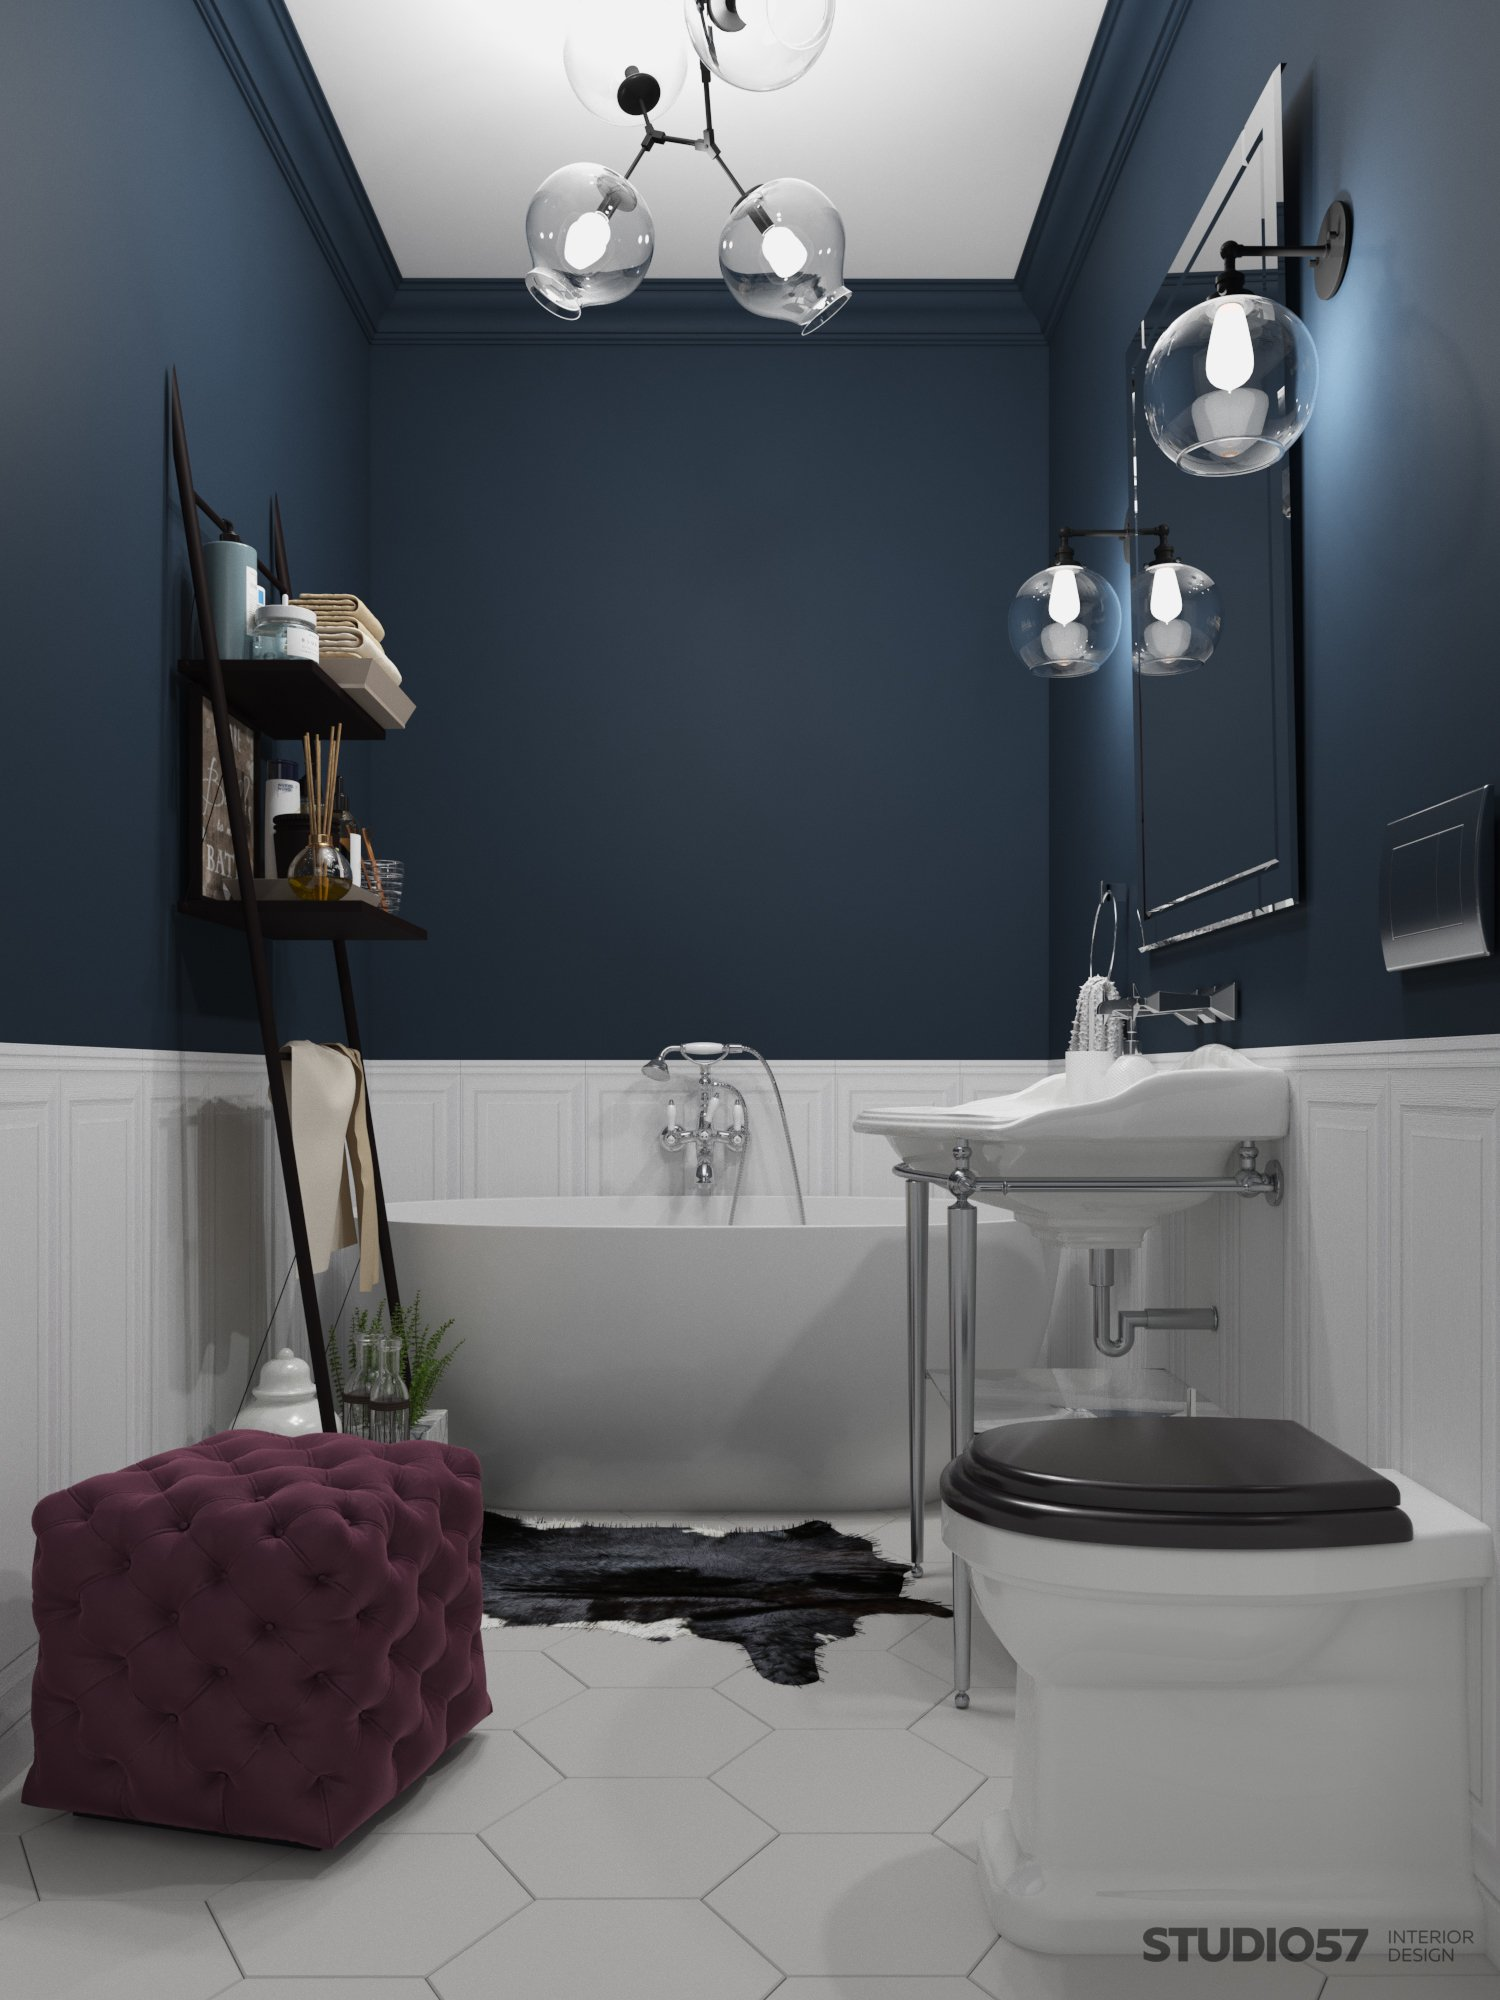 Bathroom interior in fusion style